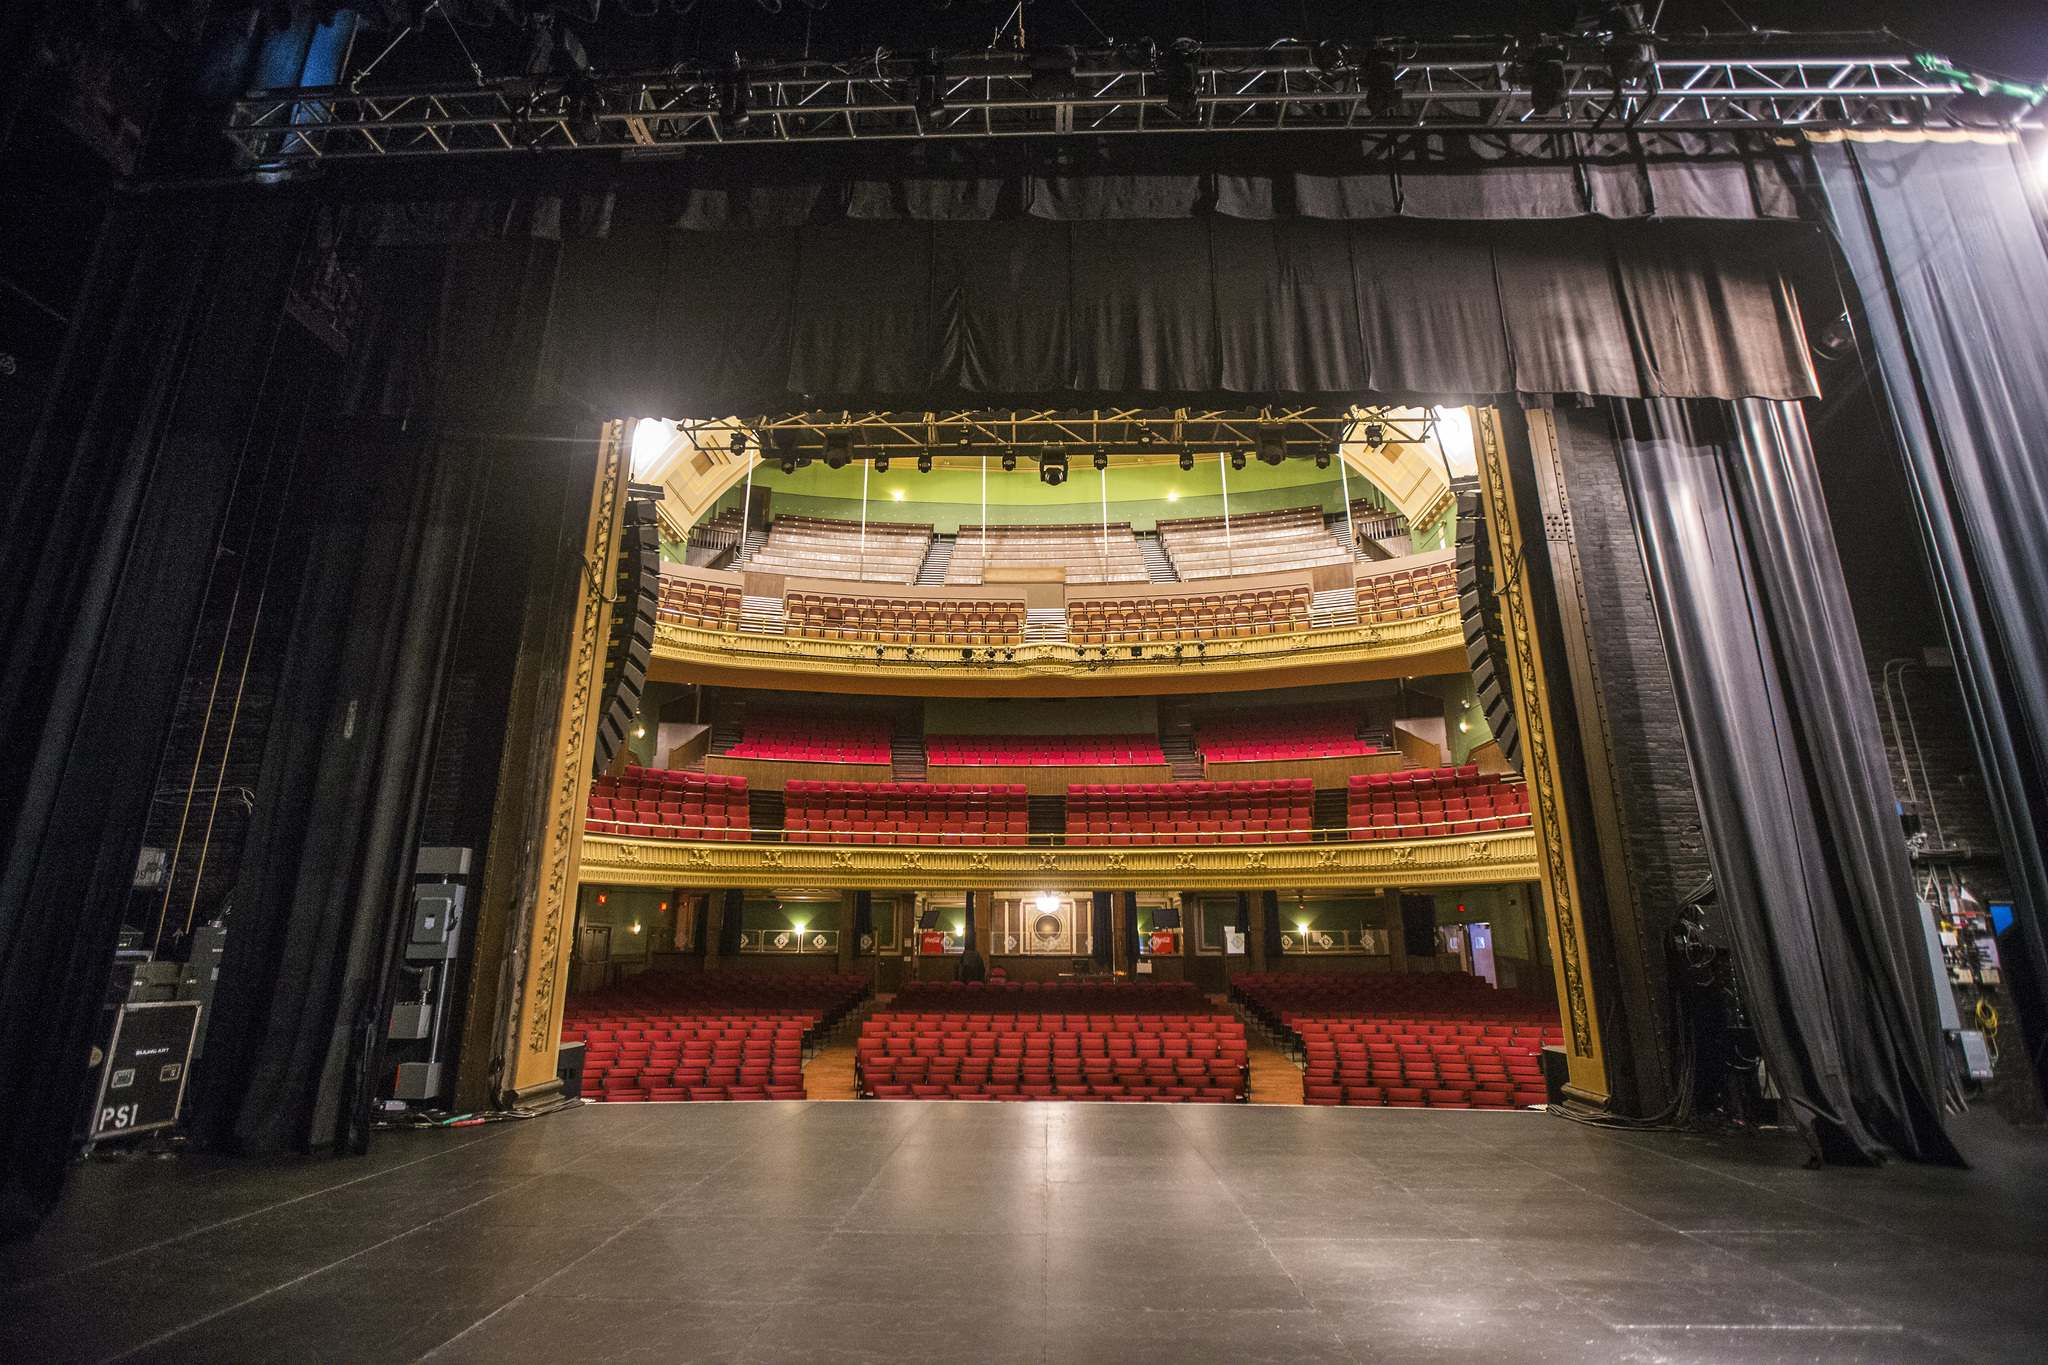 The downtime during the pandemic lockdown allowed staff to paint, clean the upholstered seats and carpets, dust the chandeliers and polish the curved brass railing on the first balcony. (Mikaela MacKenzie / Winnipeg Free Press)</p>